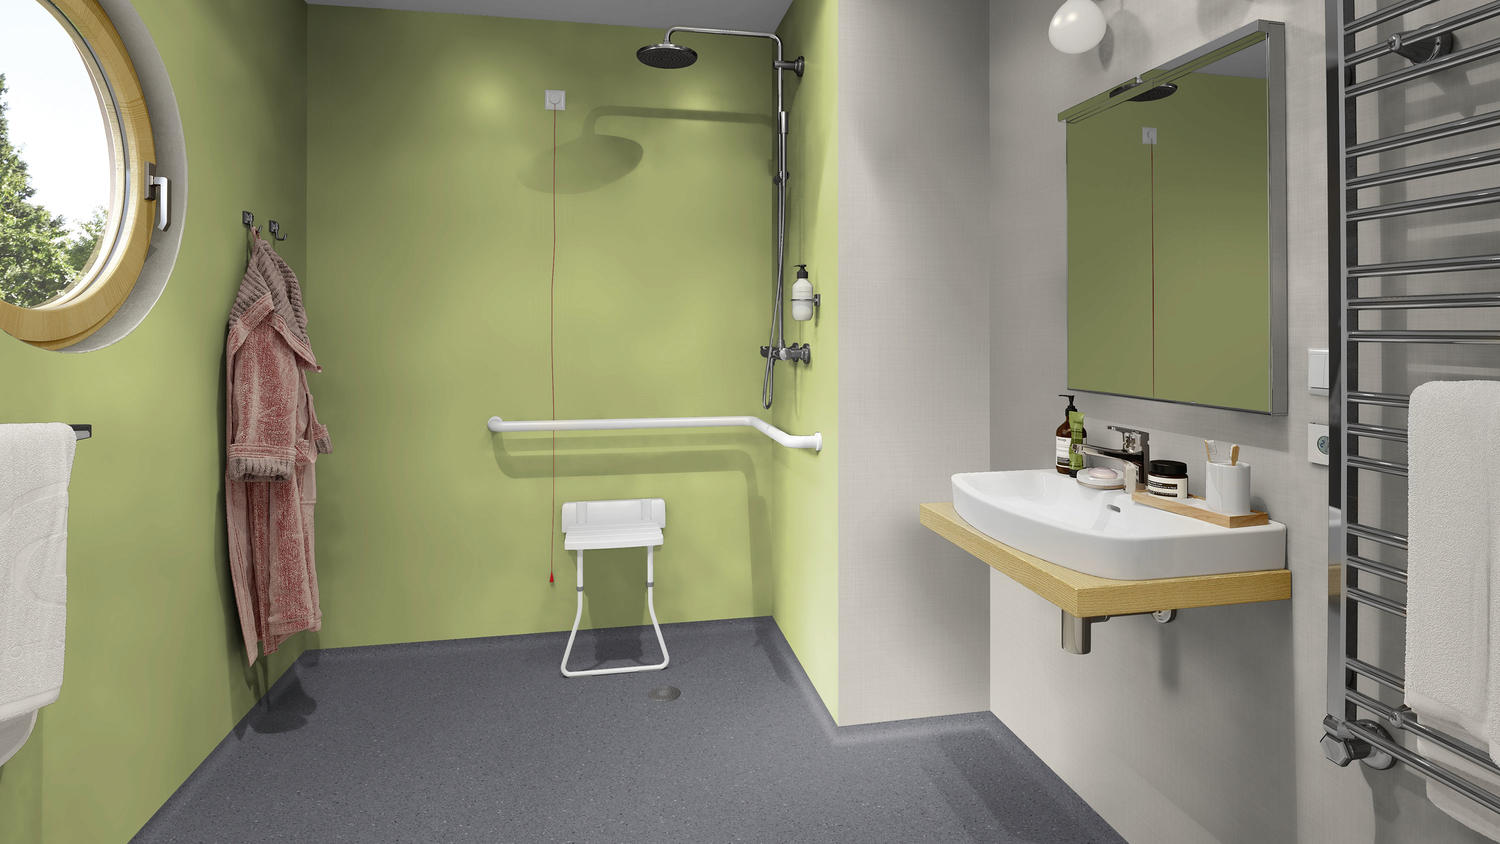 Aquarelle Wall Hfs Waterproof Fire Resistant Wall Covering Wetroom Flooring Solutions Tarkett